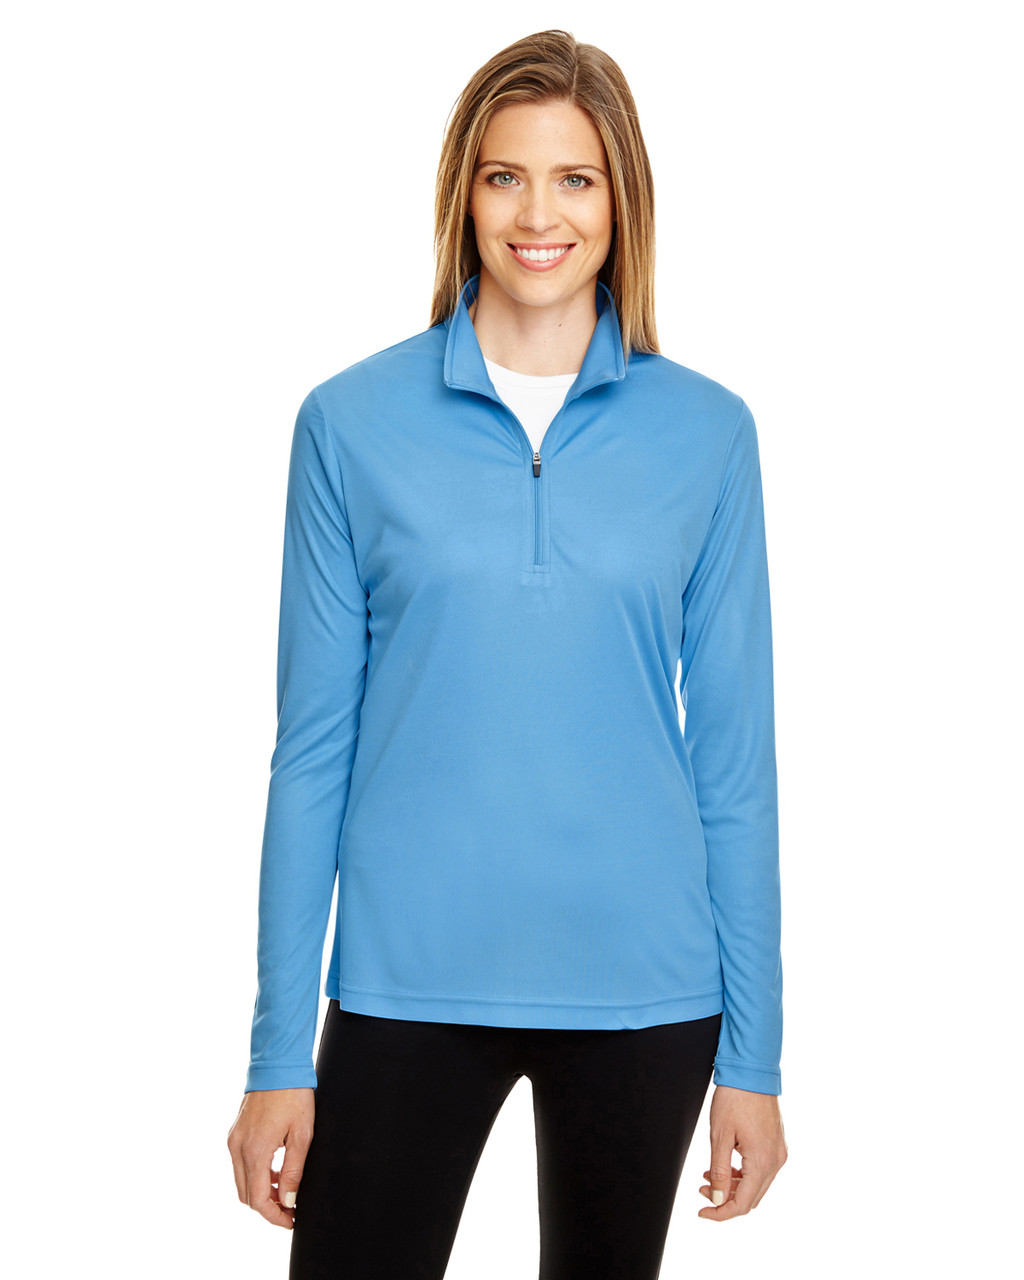 Sport Light Blue - TT31W Team 365 Ladies' Zone Performance Quarter-Zip Shirt